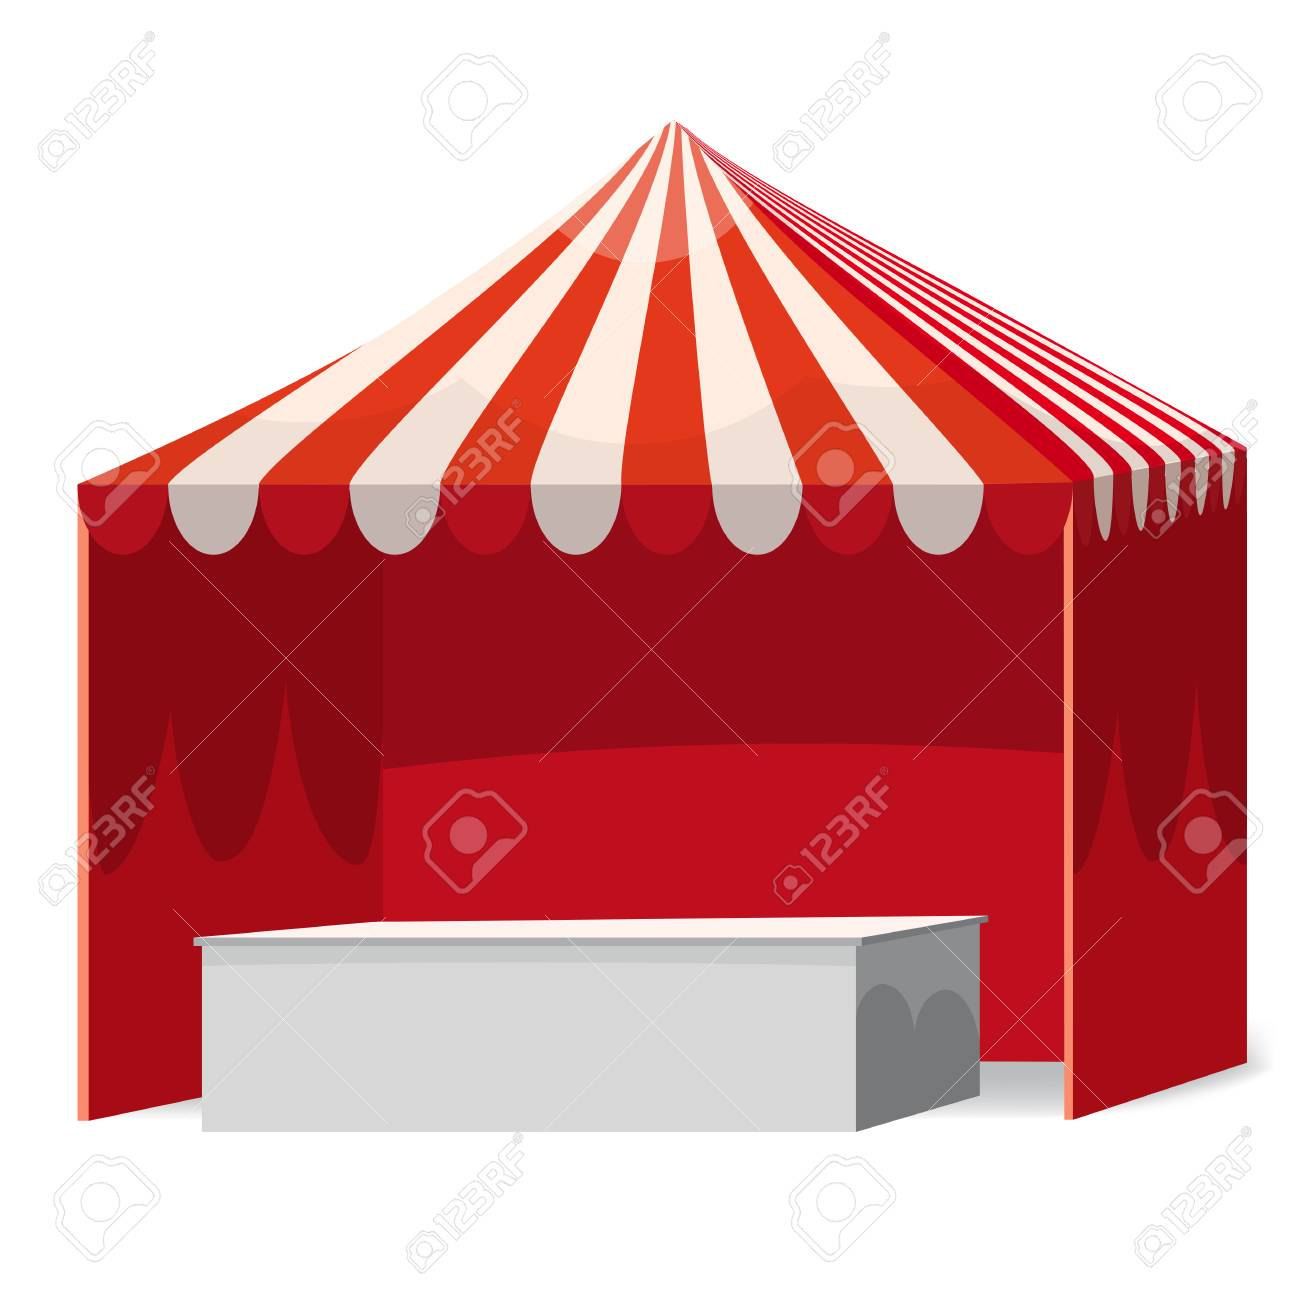 Stripped Promotional Outdoor Event Trade Show Pop-Up Red Tent Mobile ...